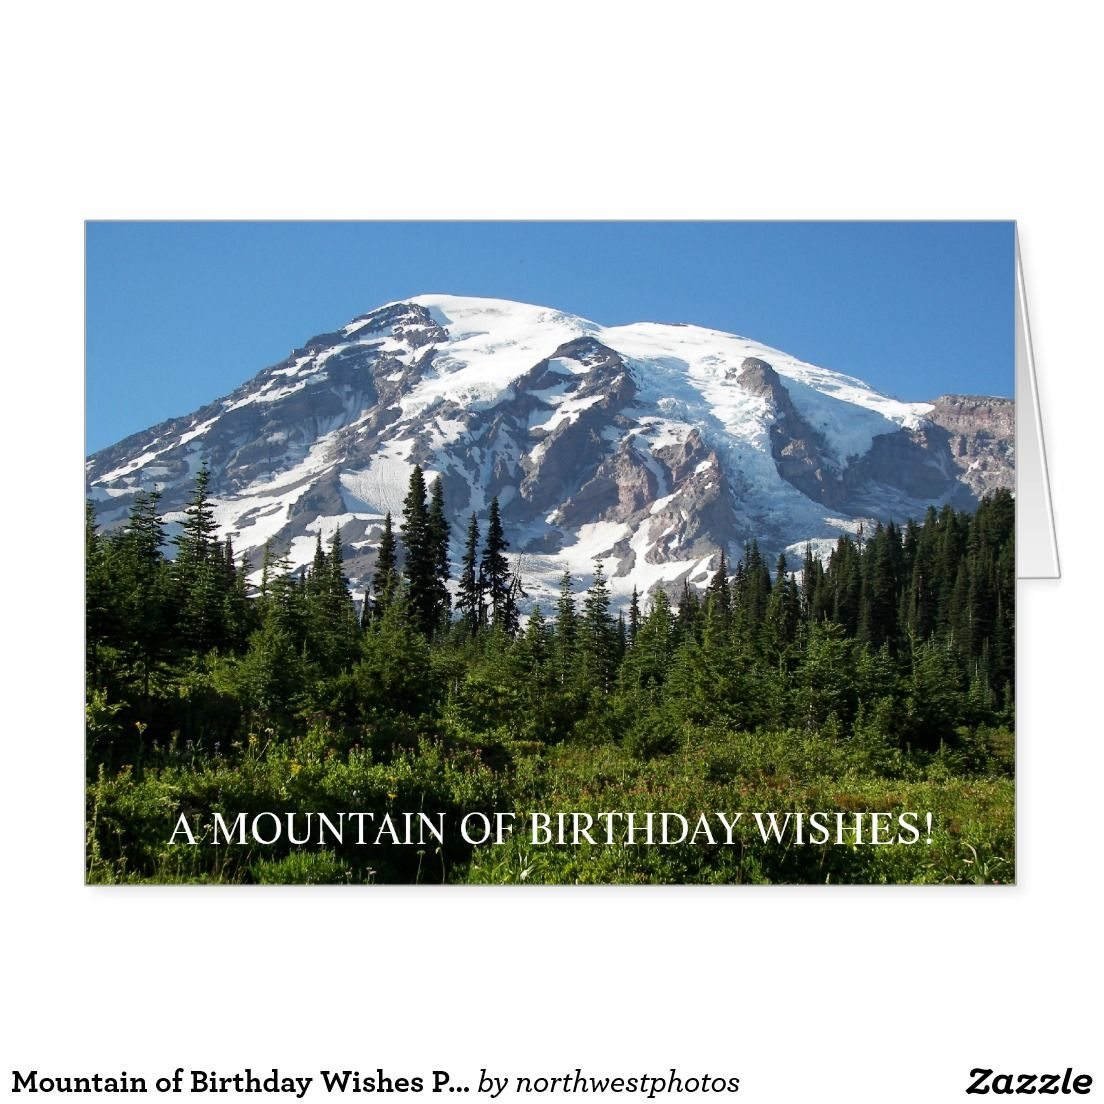 Mountain of birthday wishes photo greeting card stuff sold on mountain of birthday wishes photo greeting card kristyandbryce Images